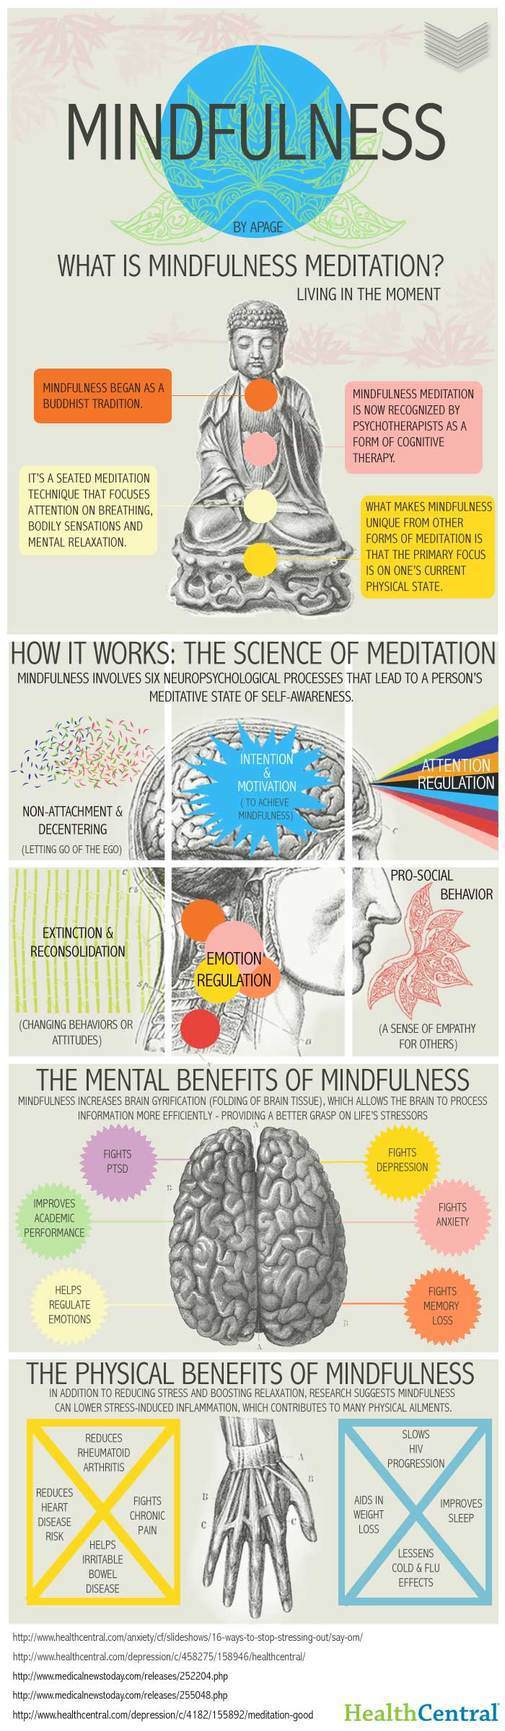 mindfulness-infographic by health central